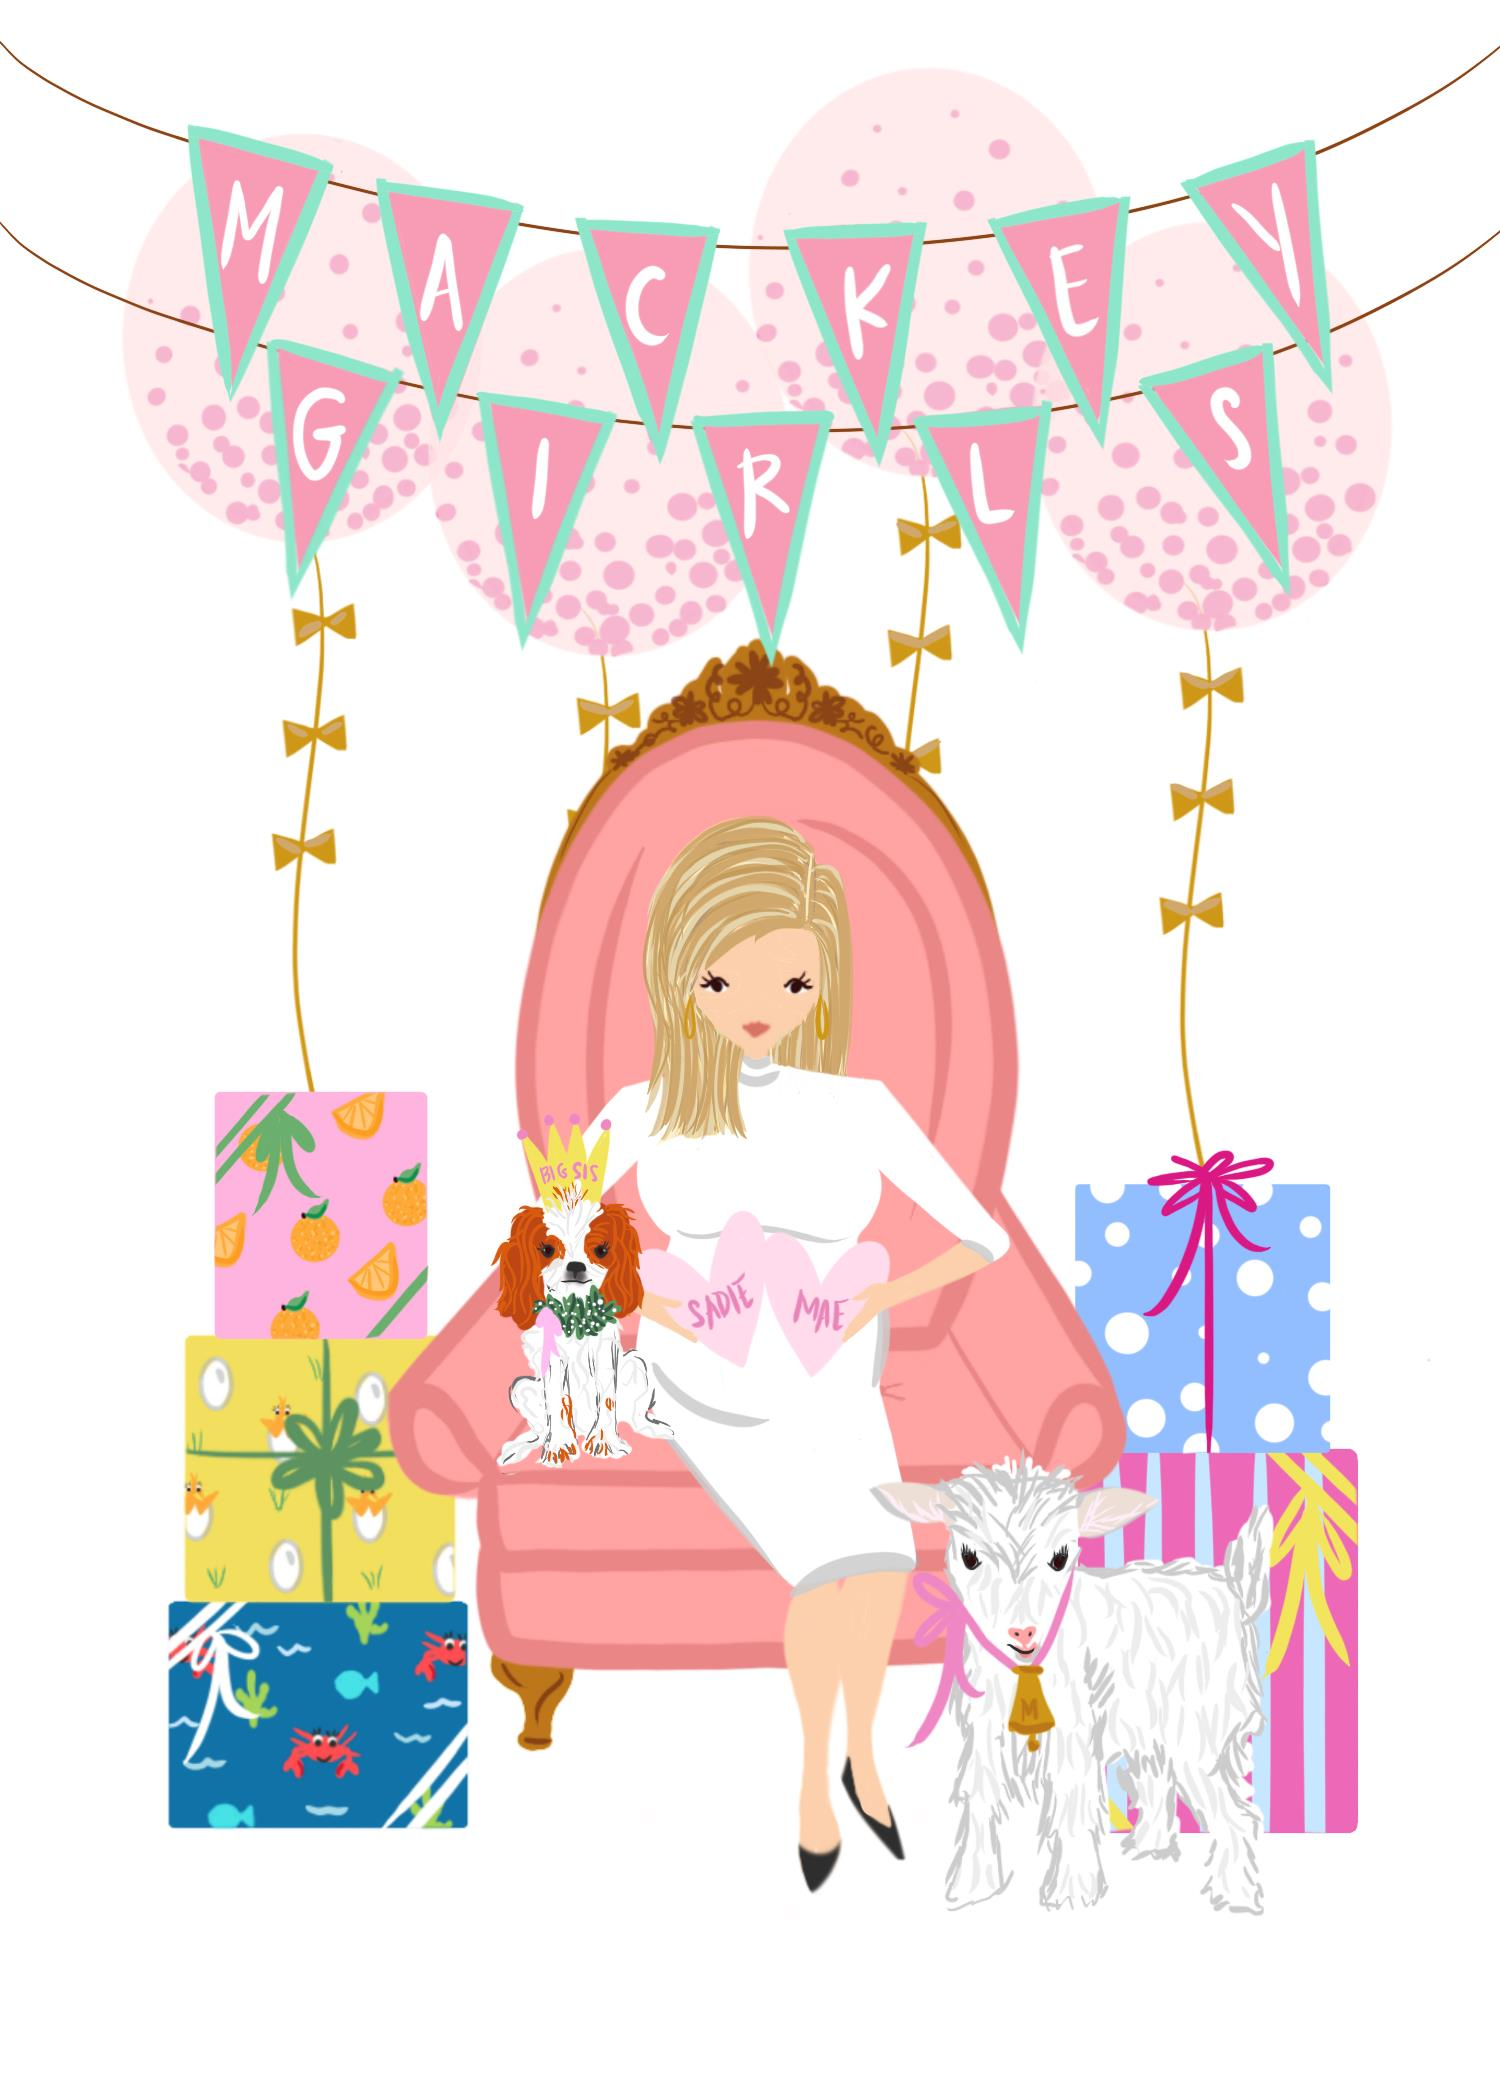 Mackey_Kathy_BabyShower2